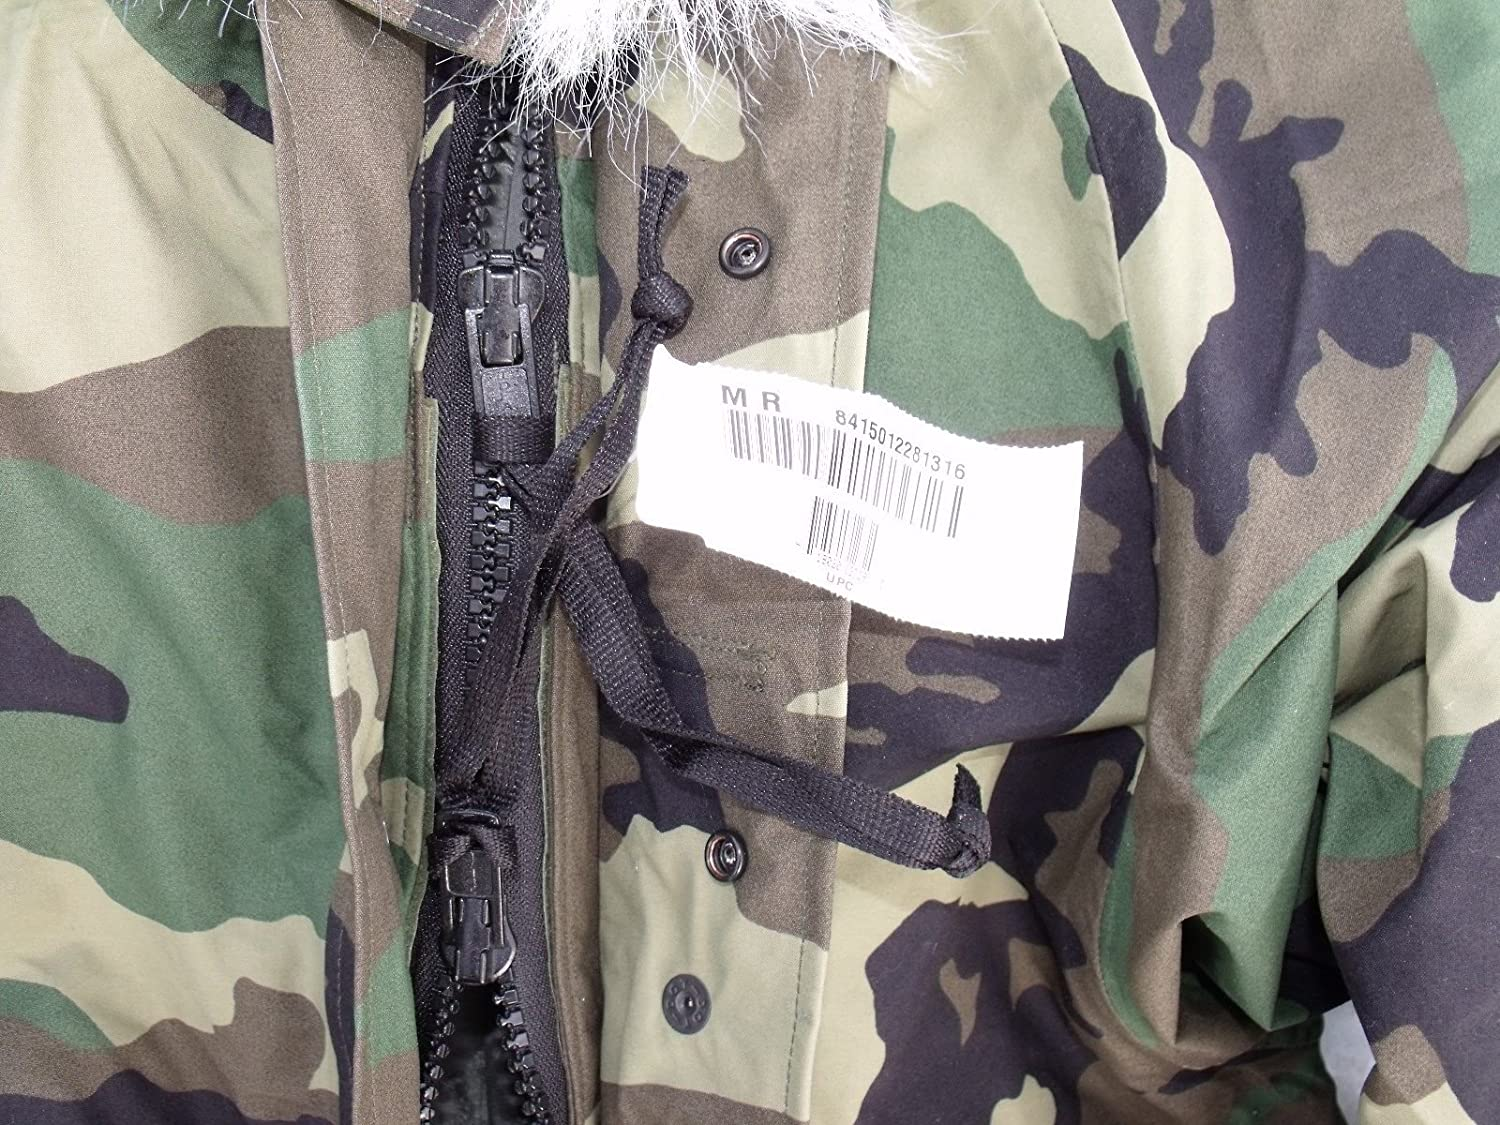 Amazon.com: New US Army Cold Wet Weather Gen 1 ECWCS Woodland ...